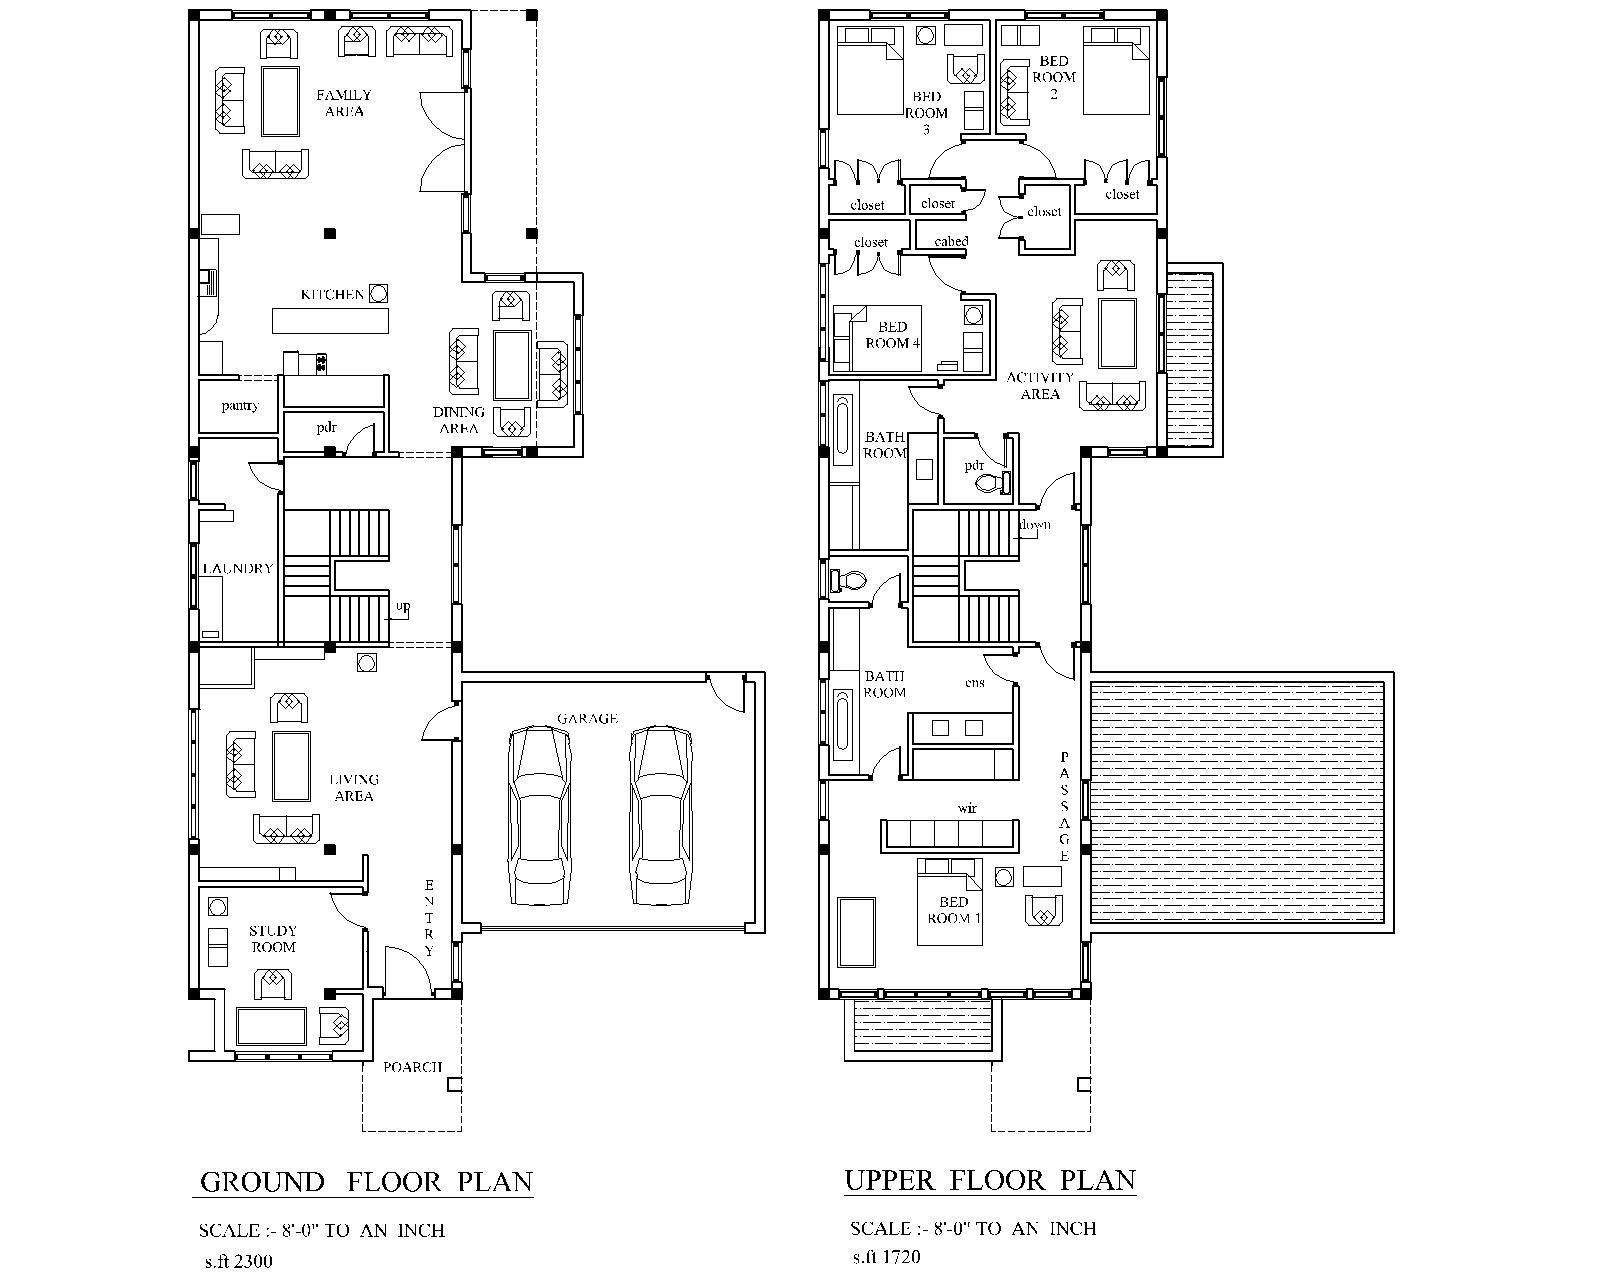 Modern House Plan Pdf Total 4020 Sf New Smart Home Complete House Plan 2 Story Ebay House Plans House Plans 2 Story Modern House Plan